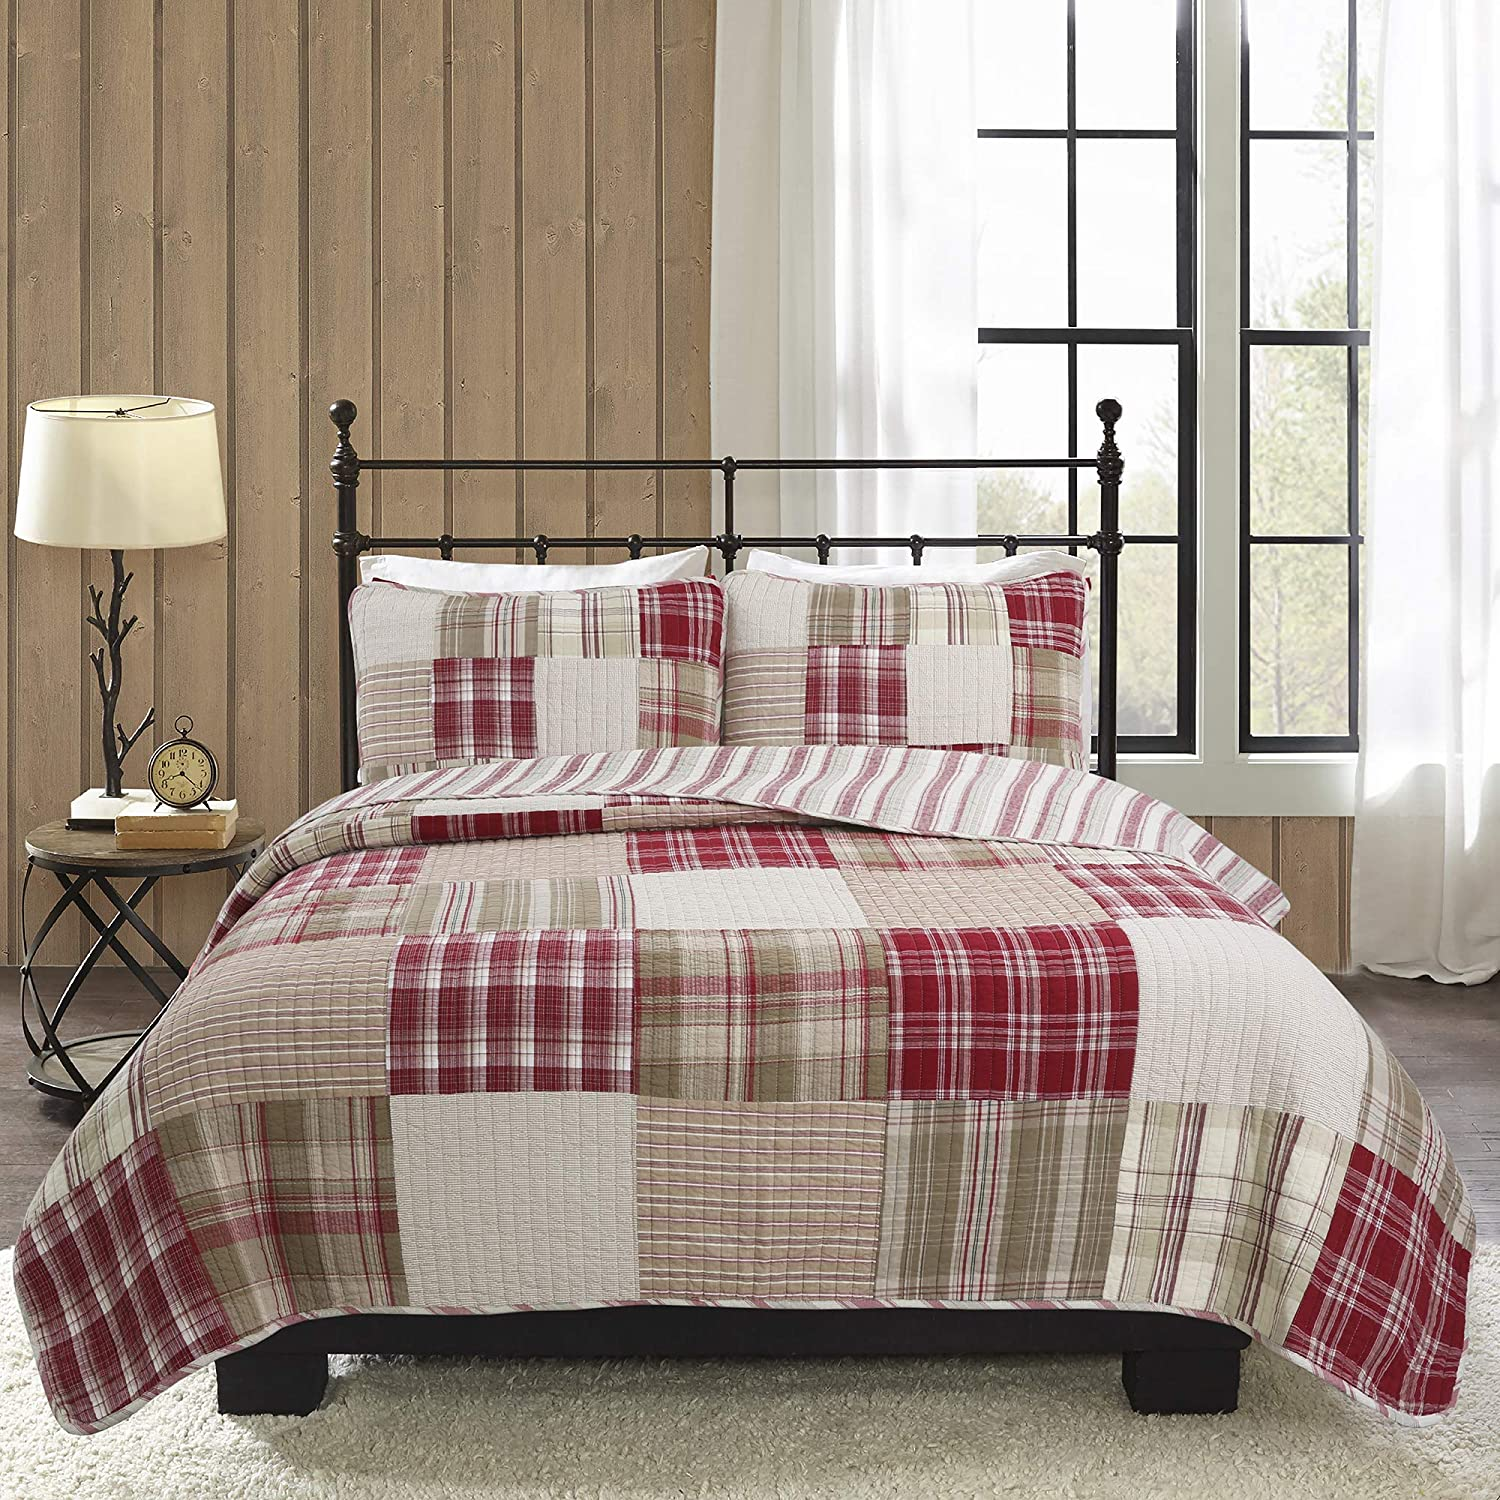 Cozy Line Home Fashions Alivia Red Brown Real Patchwork 100% Cotton Reversible Bedding Quilt Set (Alivia Patchwork, Queen -3 Piece)